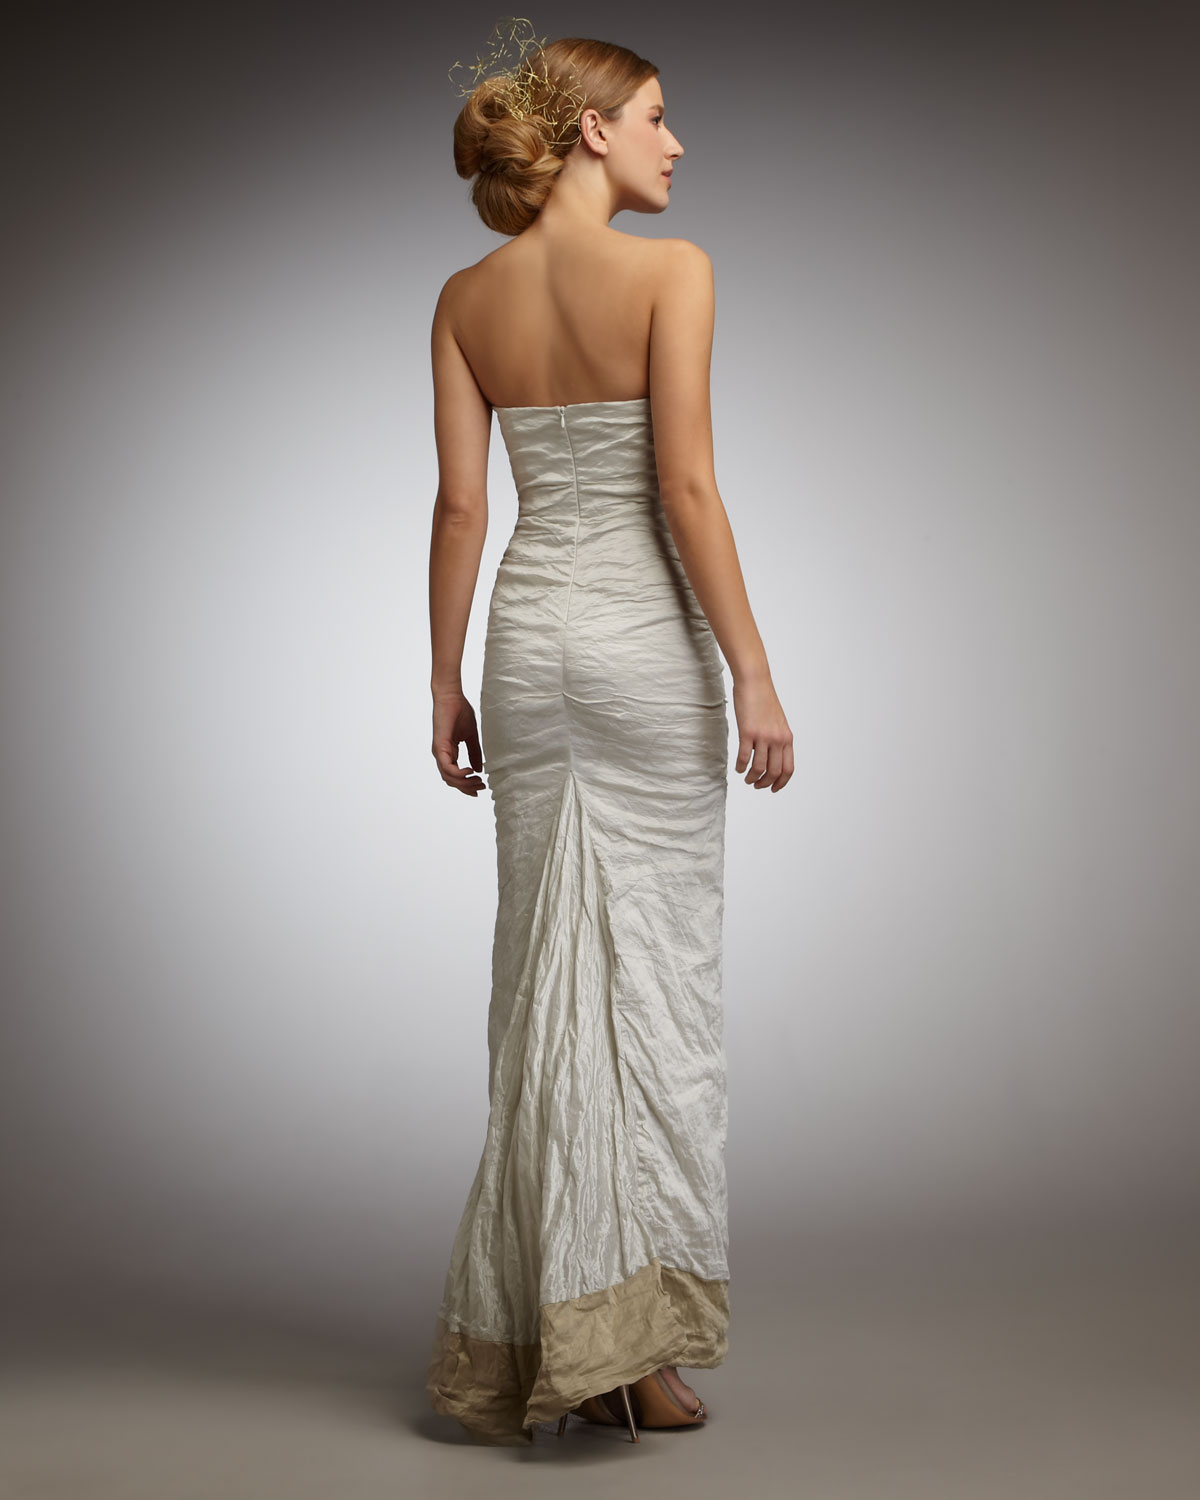 Gallery Nicole Miller Bridal Wedding Dresses: Nicole Miller Strapless Techno Metal Gown In White